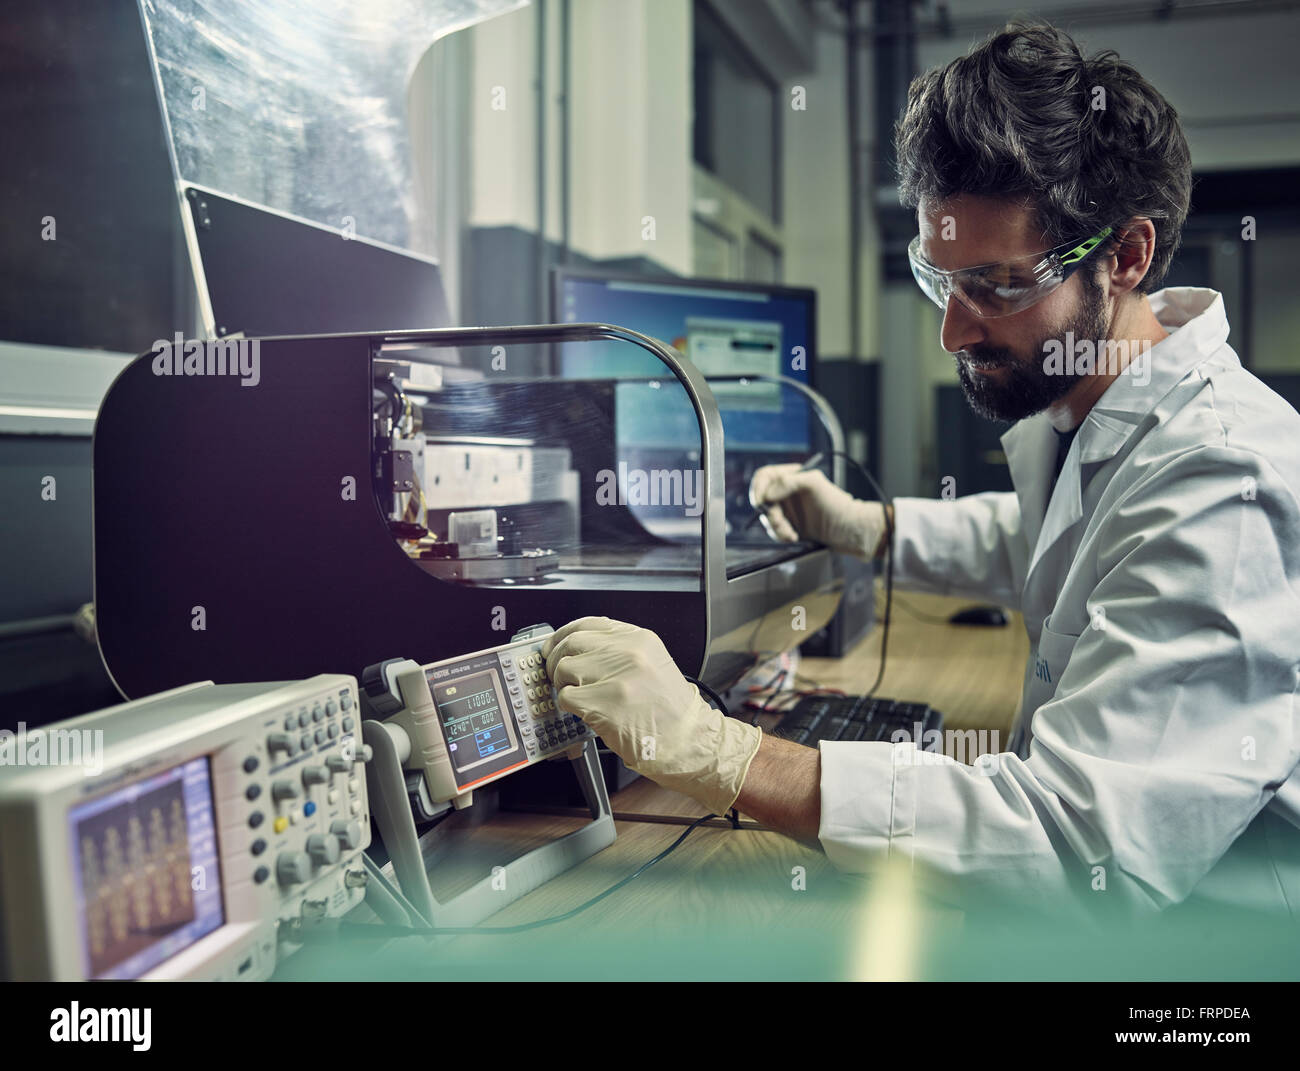 Worker, instrument technician measuring resistance, electrical signals, Austria - Stock Image